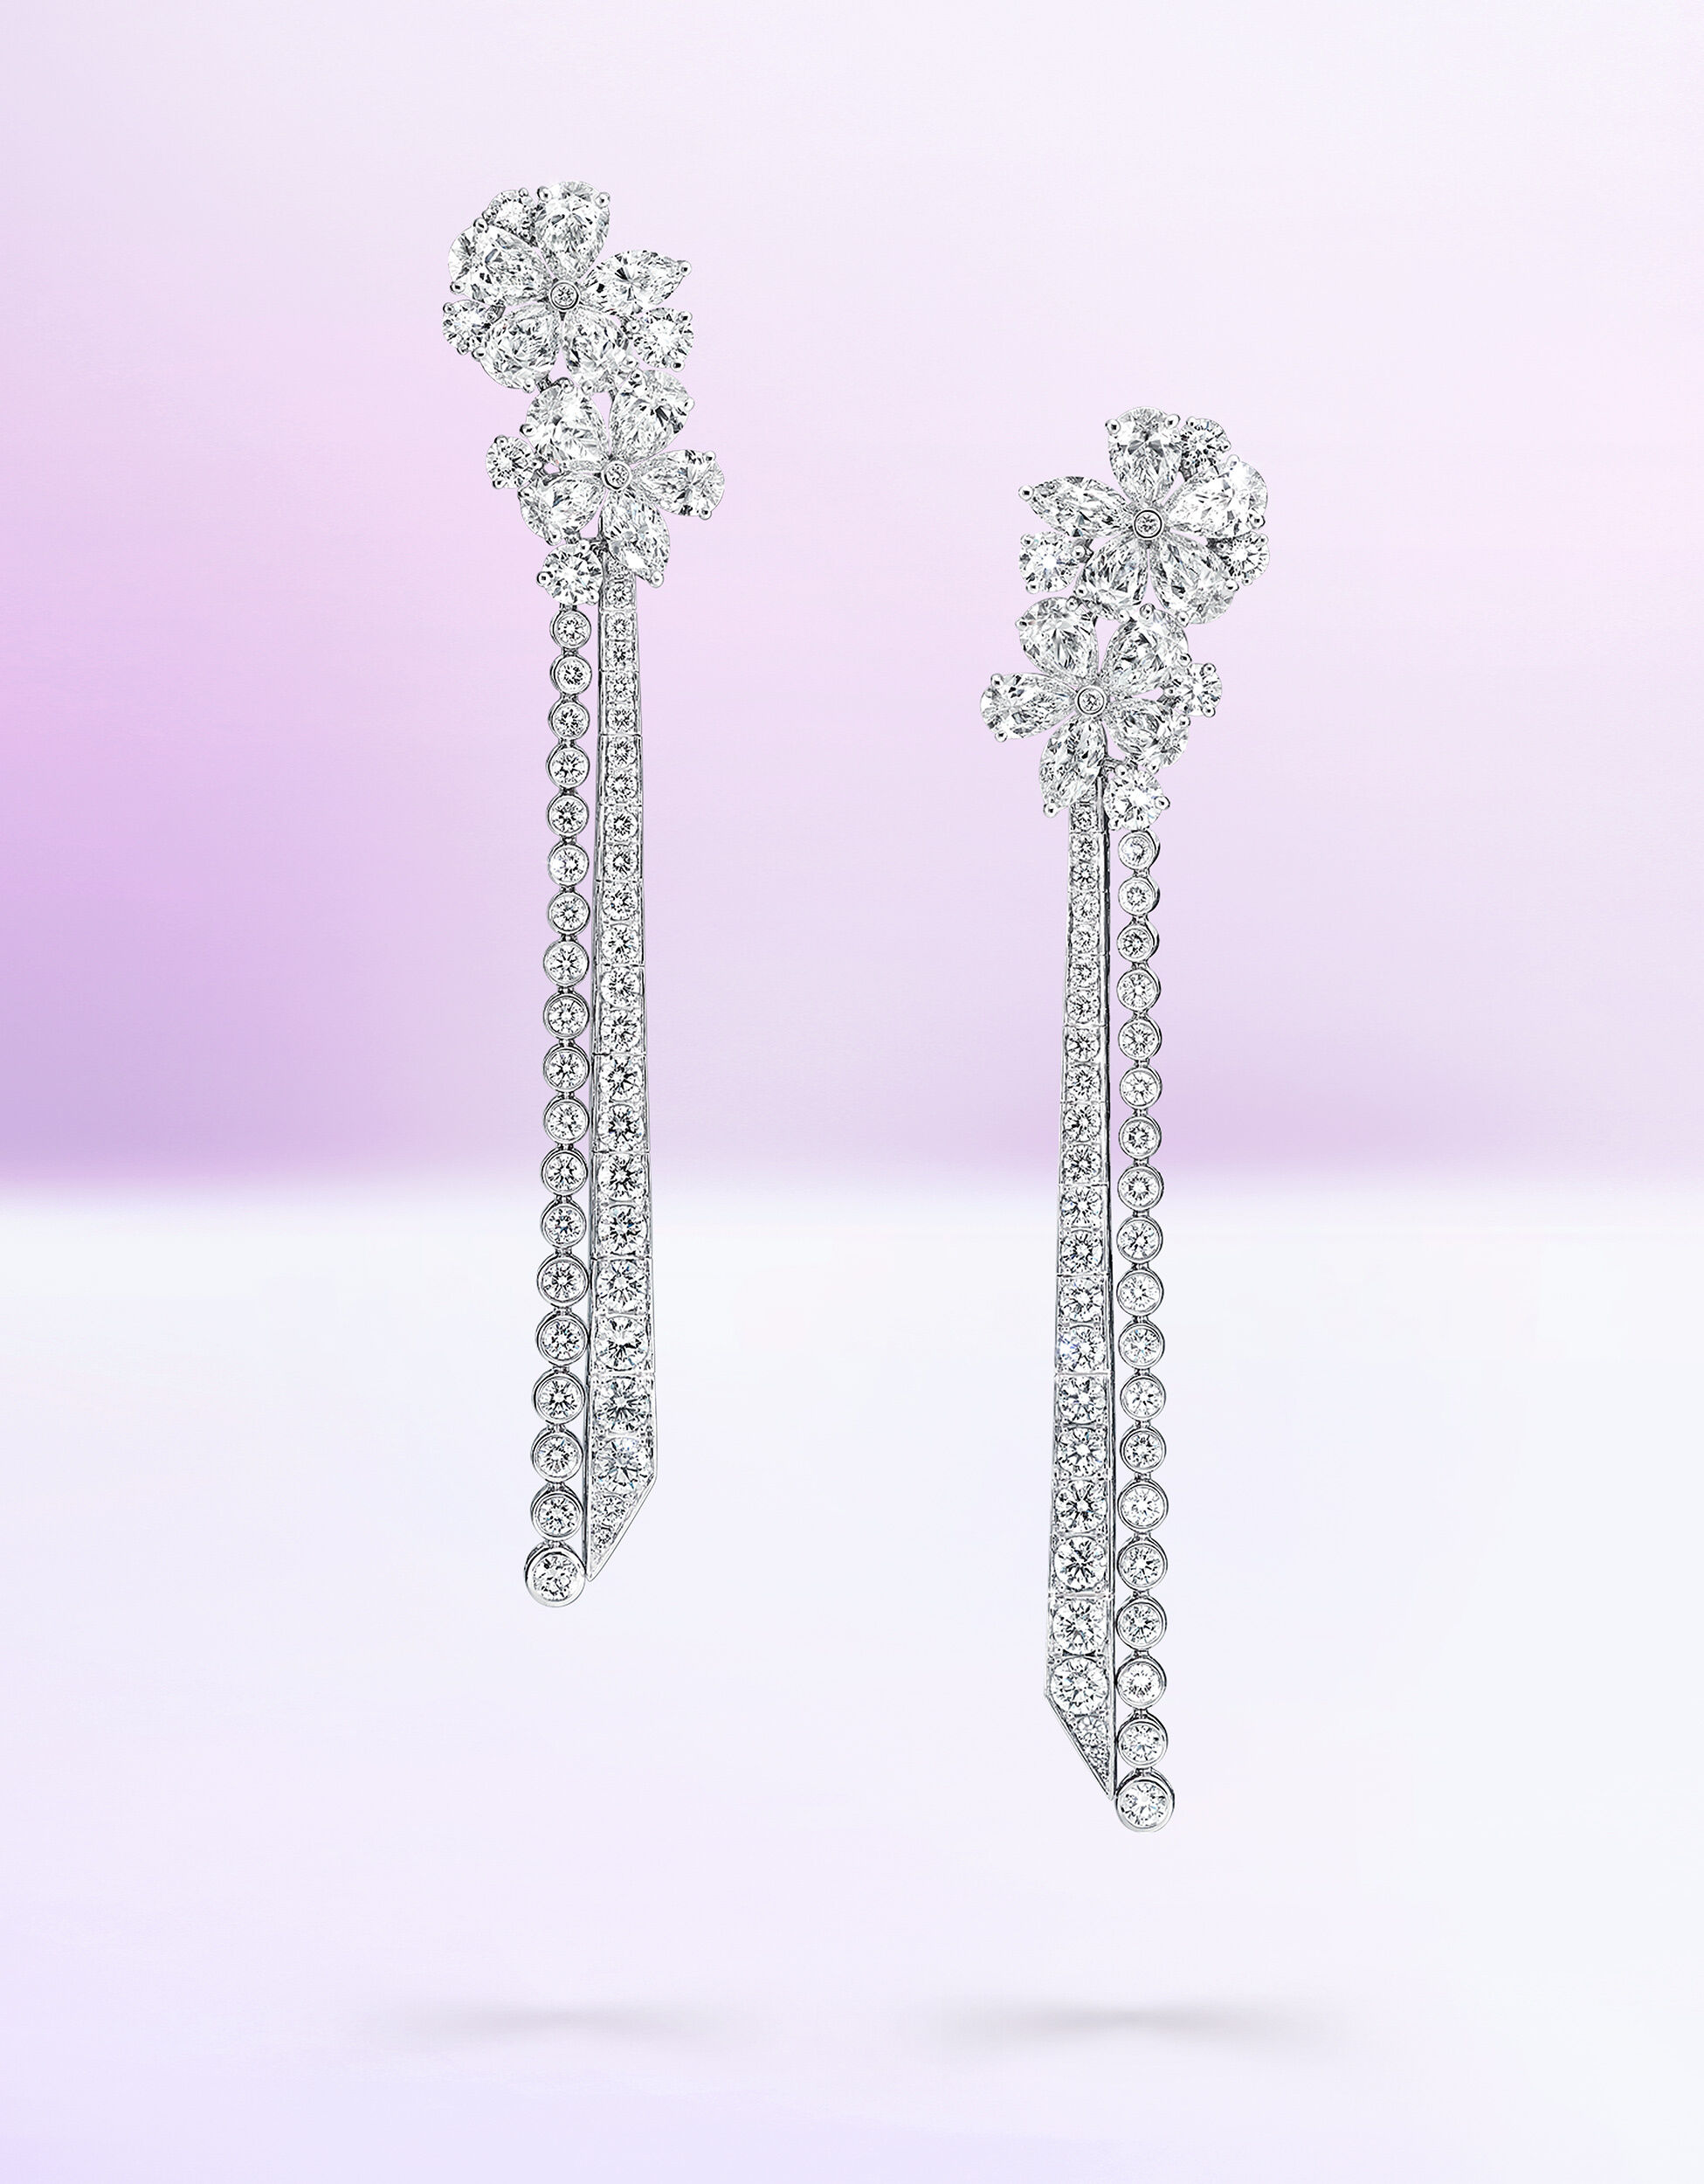 A Pair of Graff Carissa Jewellery Collection Diamond Earrings